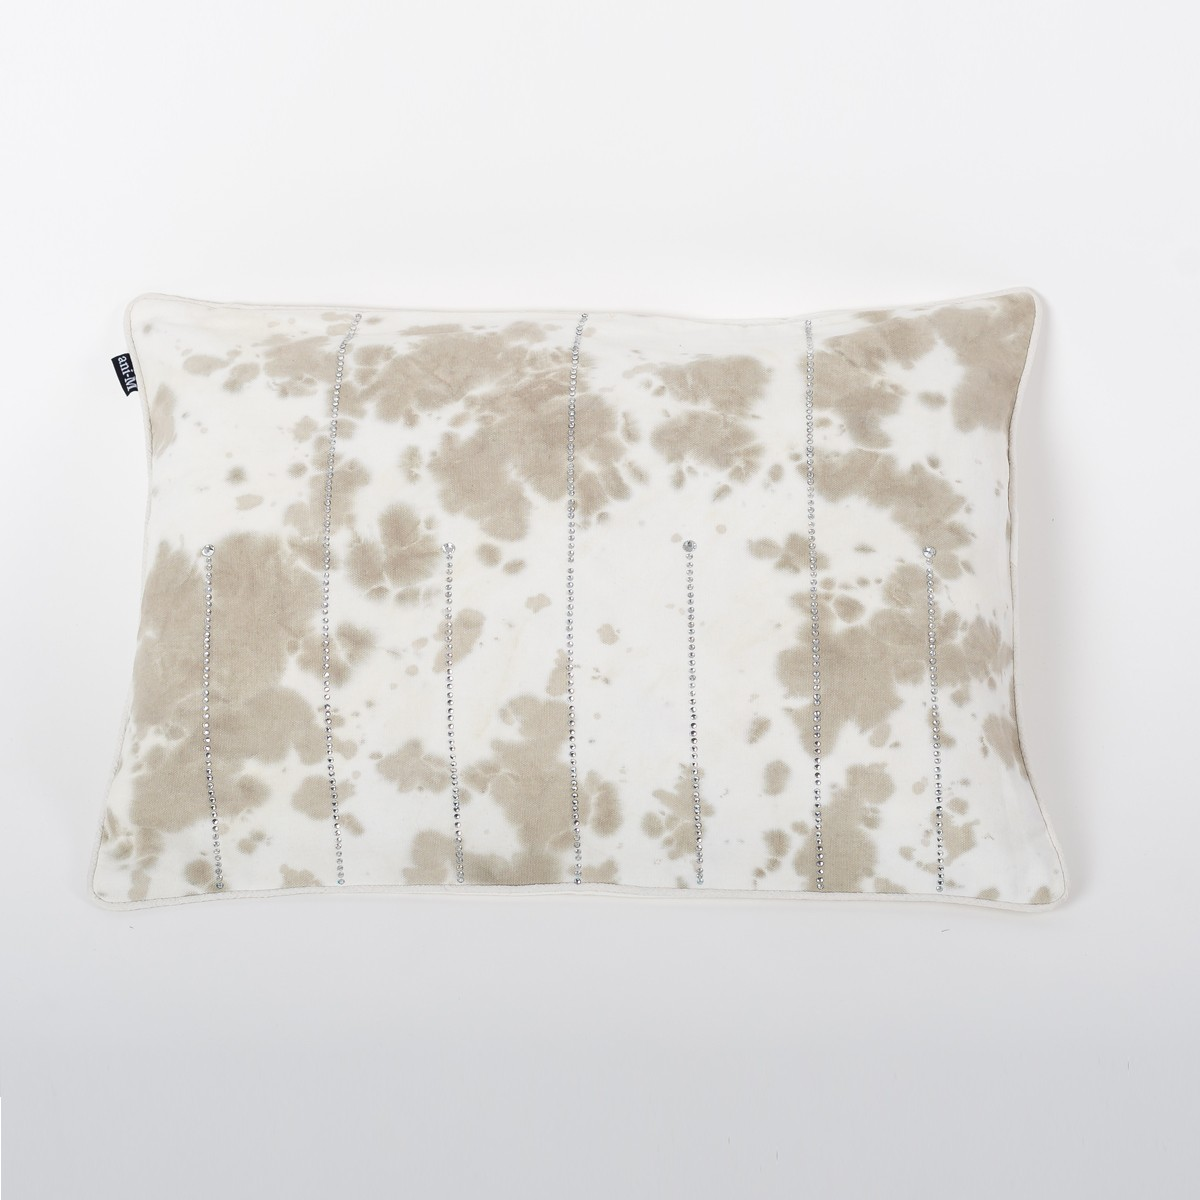 Petite Ombre Gale Grey & Ivory Tie & Dye Cotton Rectangle Cushion Cover with Crystals Front